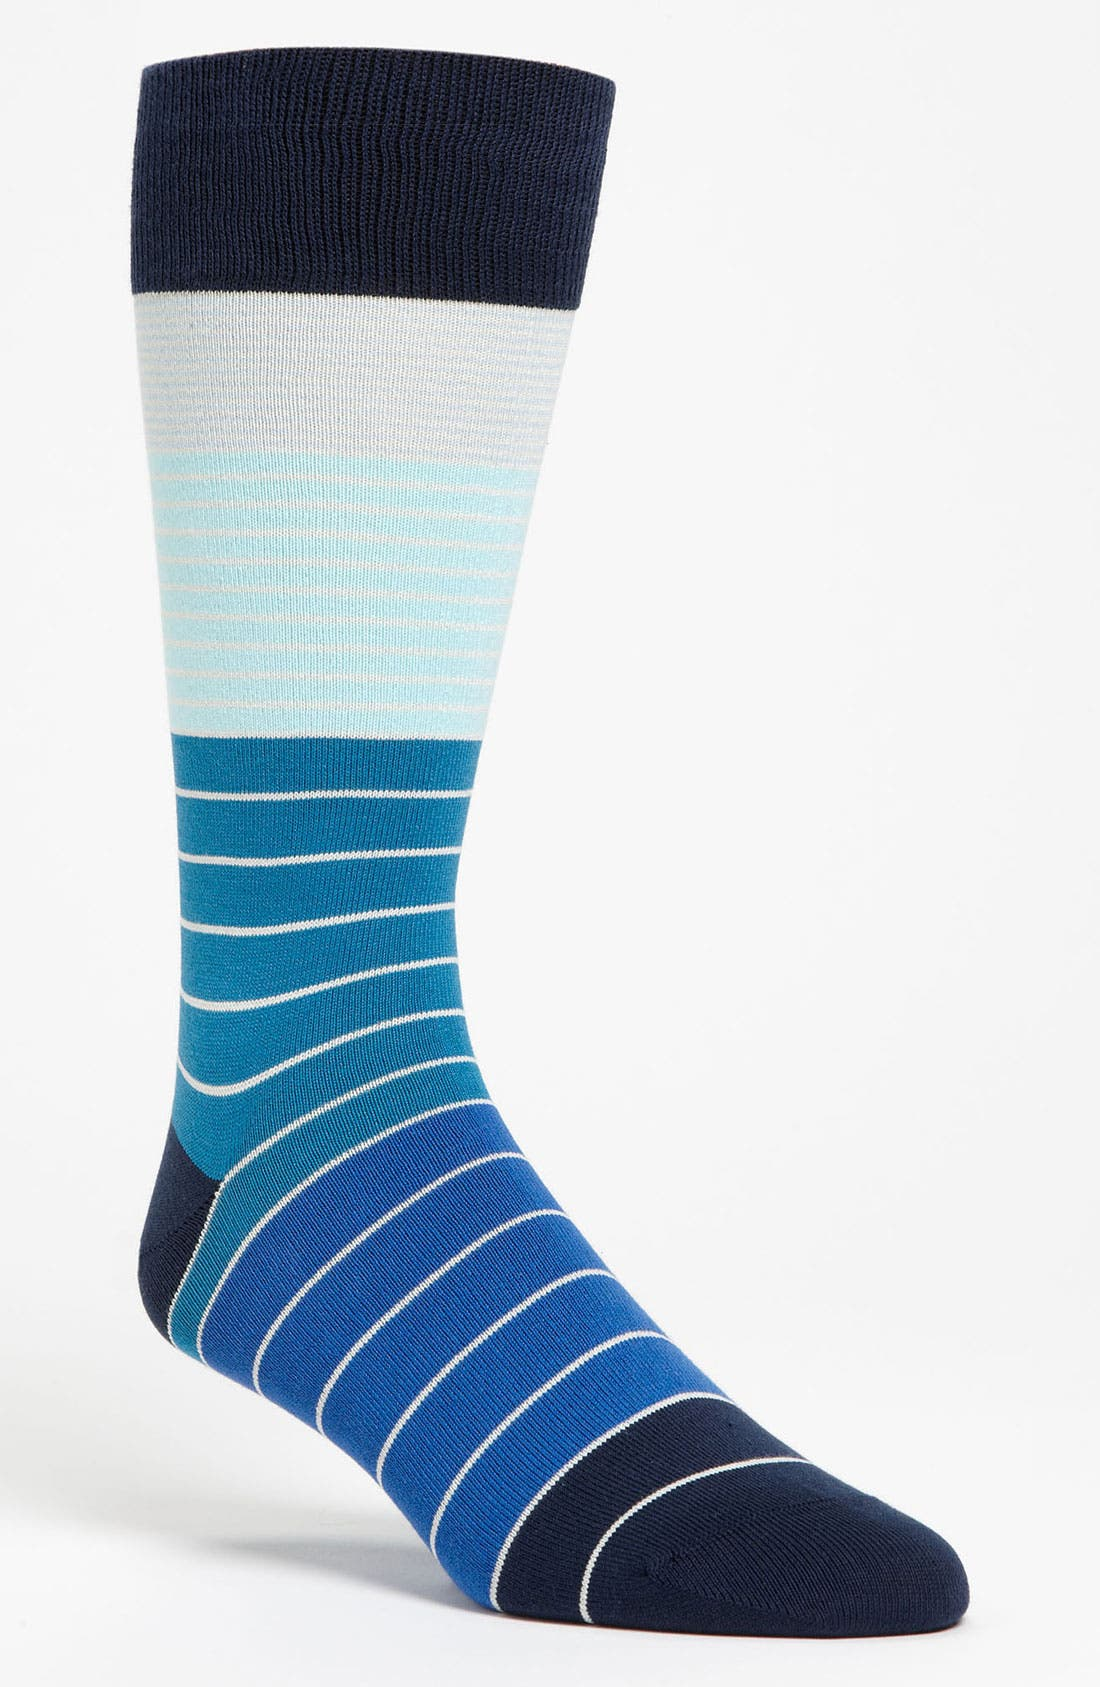 Main Image - Paul Smith Accessories Colorblock Stripe Socks